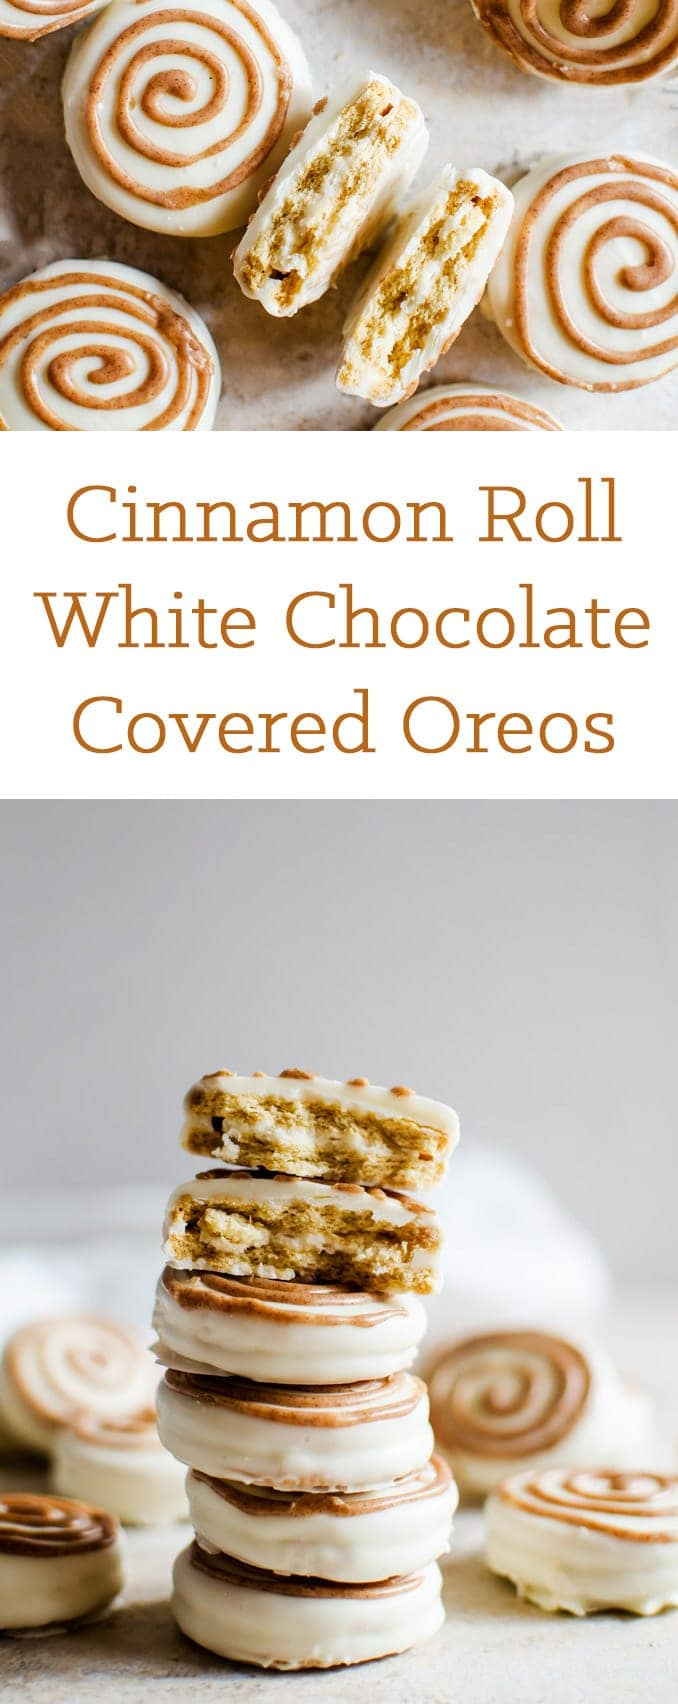 Irresistible cinnamon roll white chocolate covered oreos